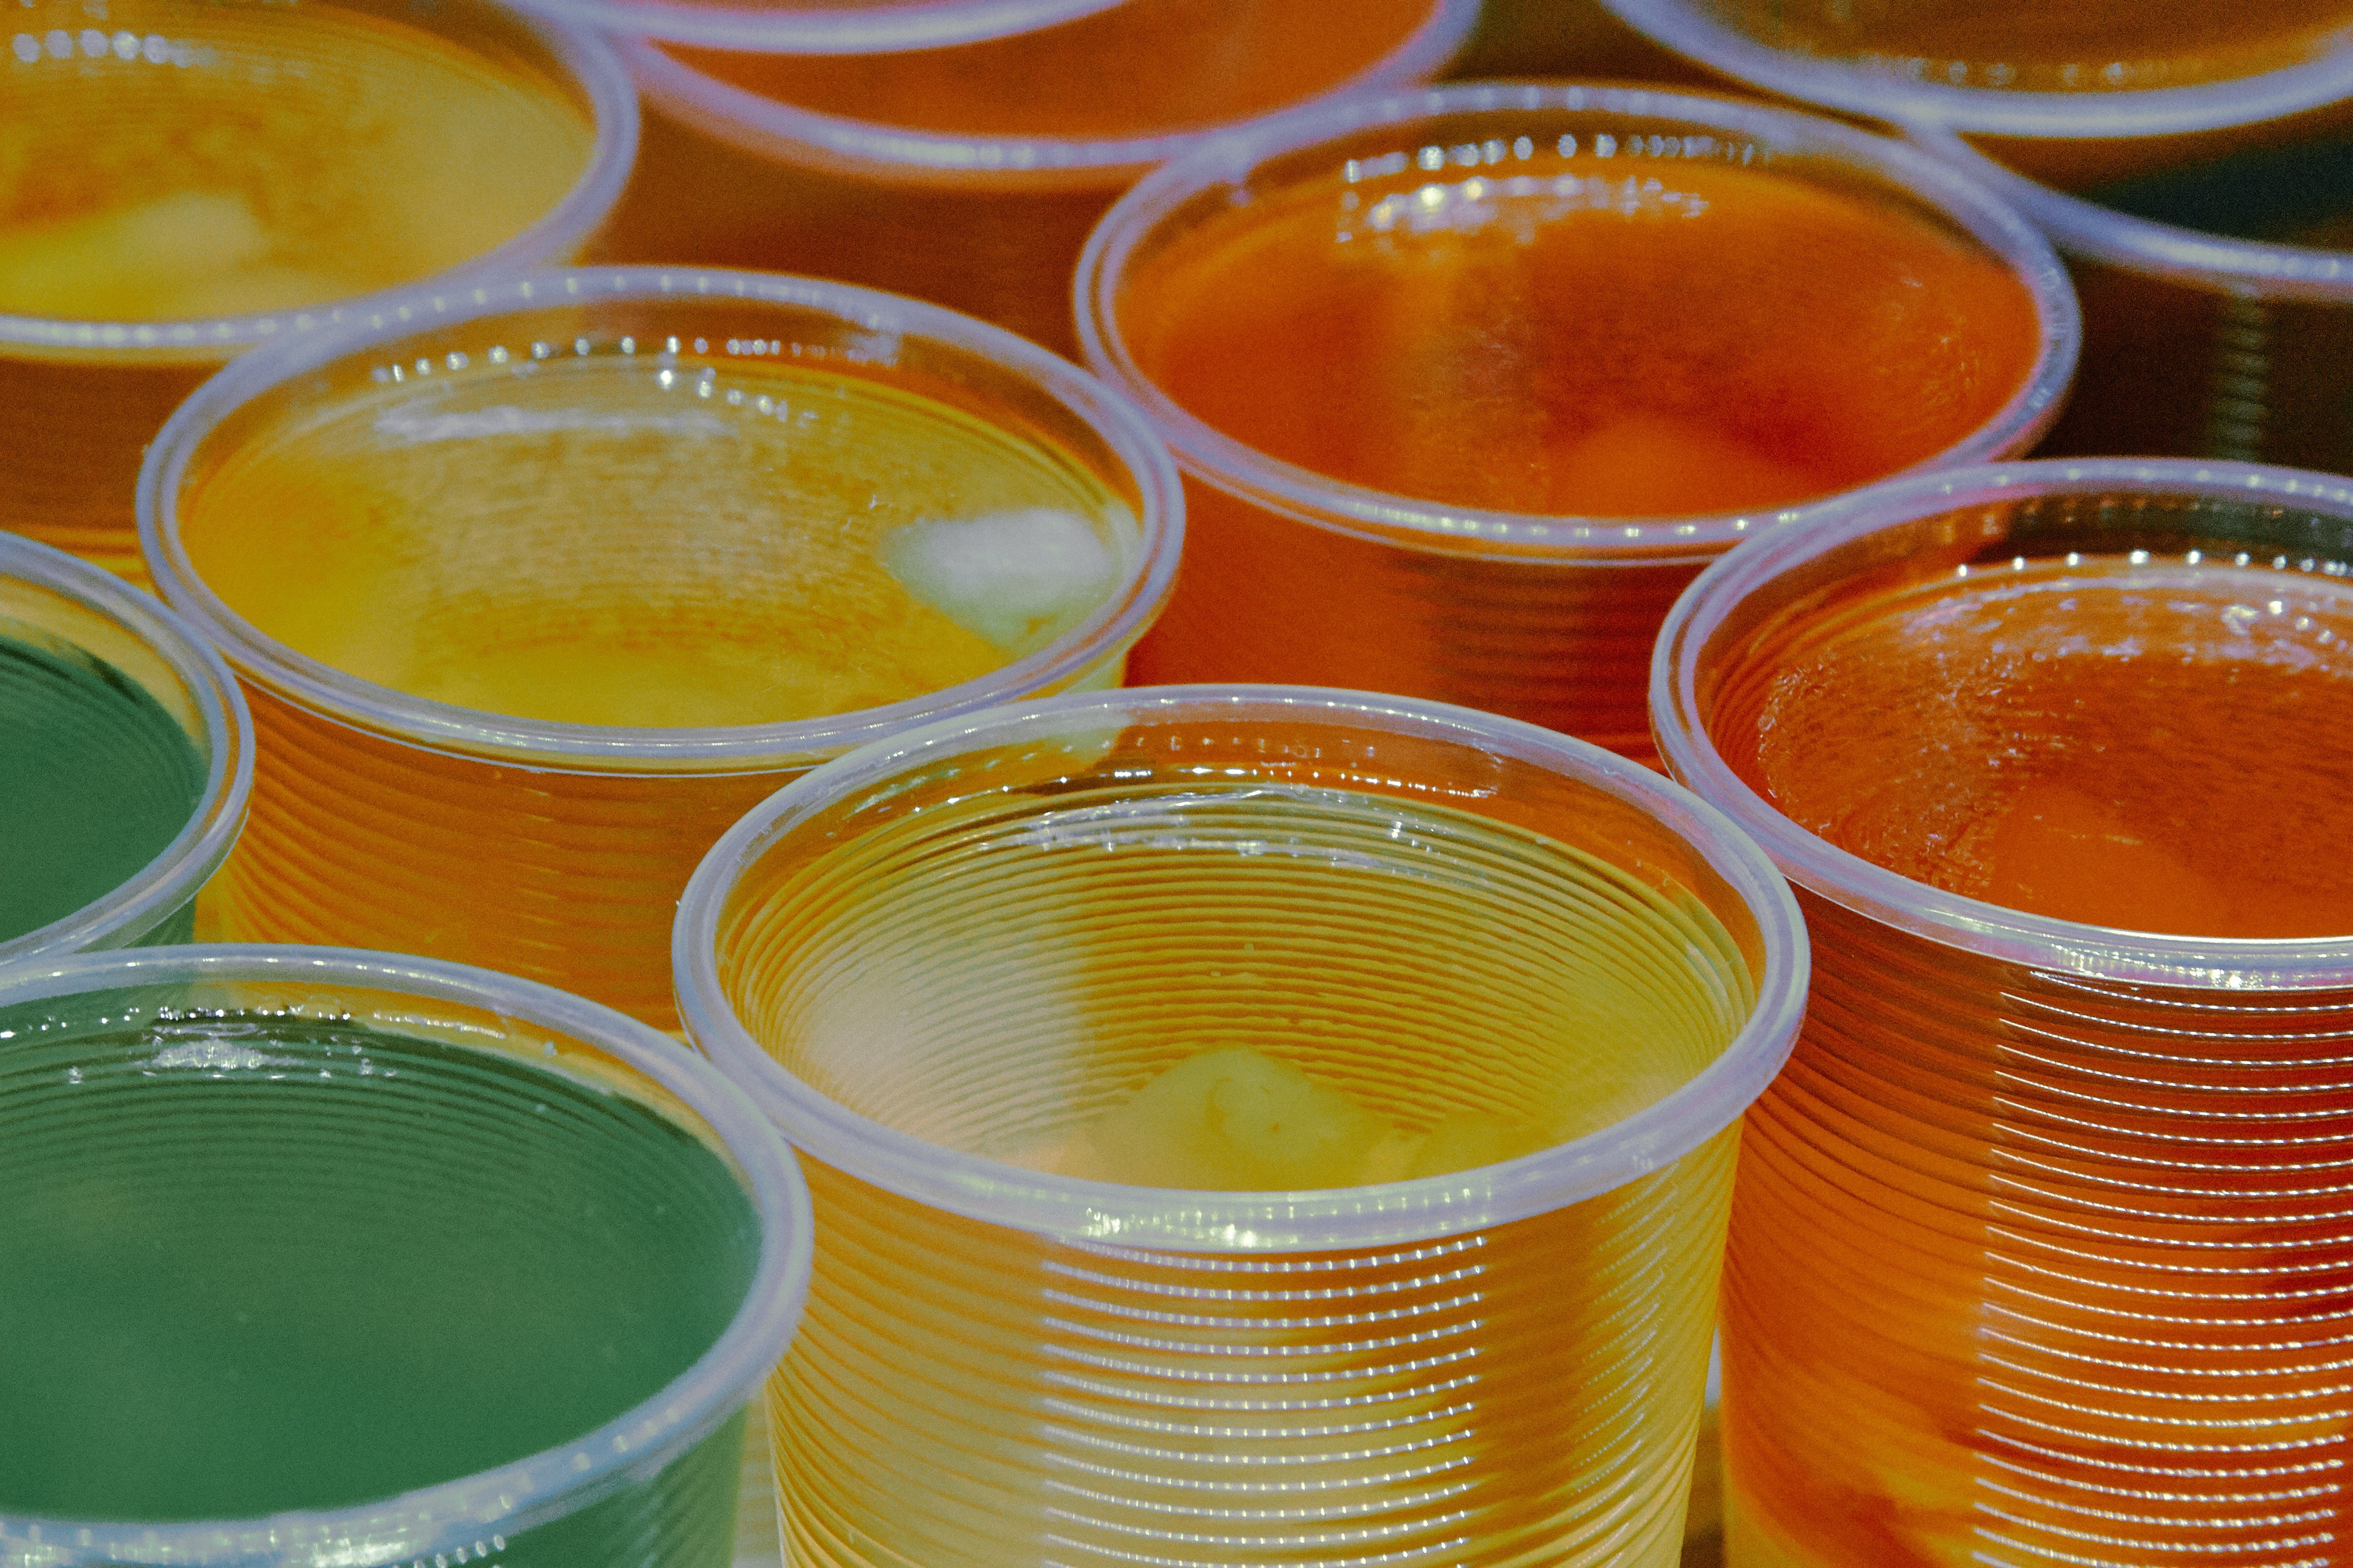 An assortment of green, yellow, and orange Jell-O shots